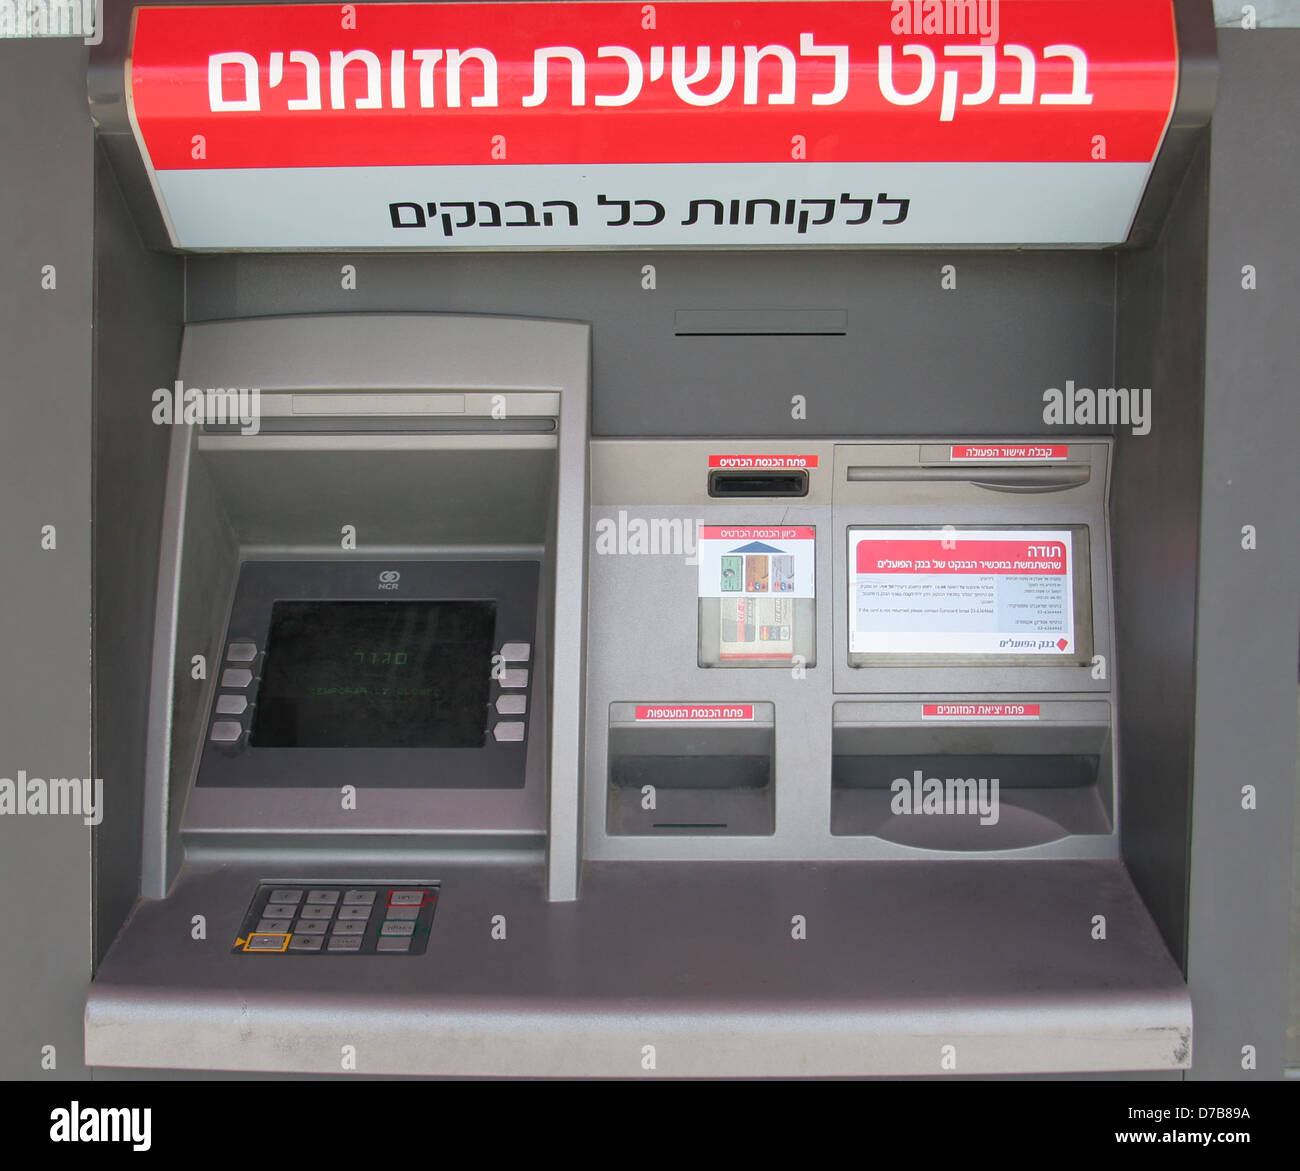 automatic bank services machine (2005) - Stock Image